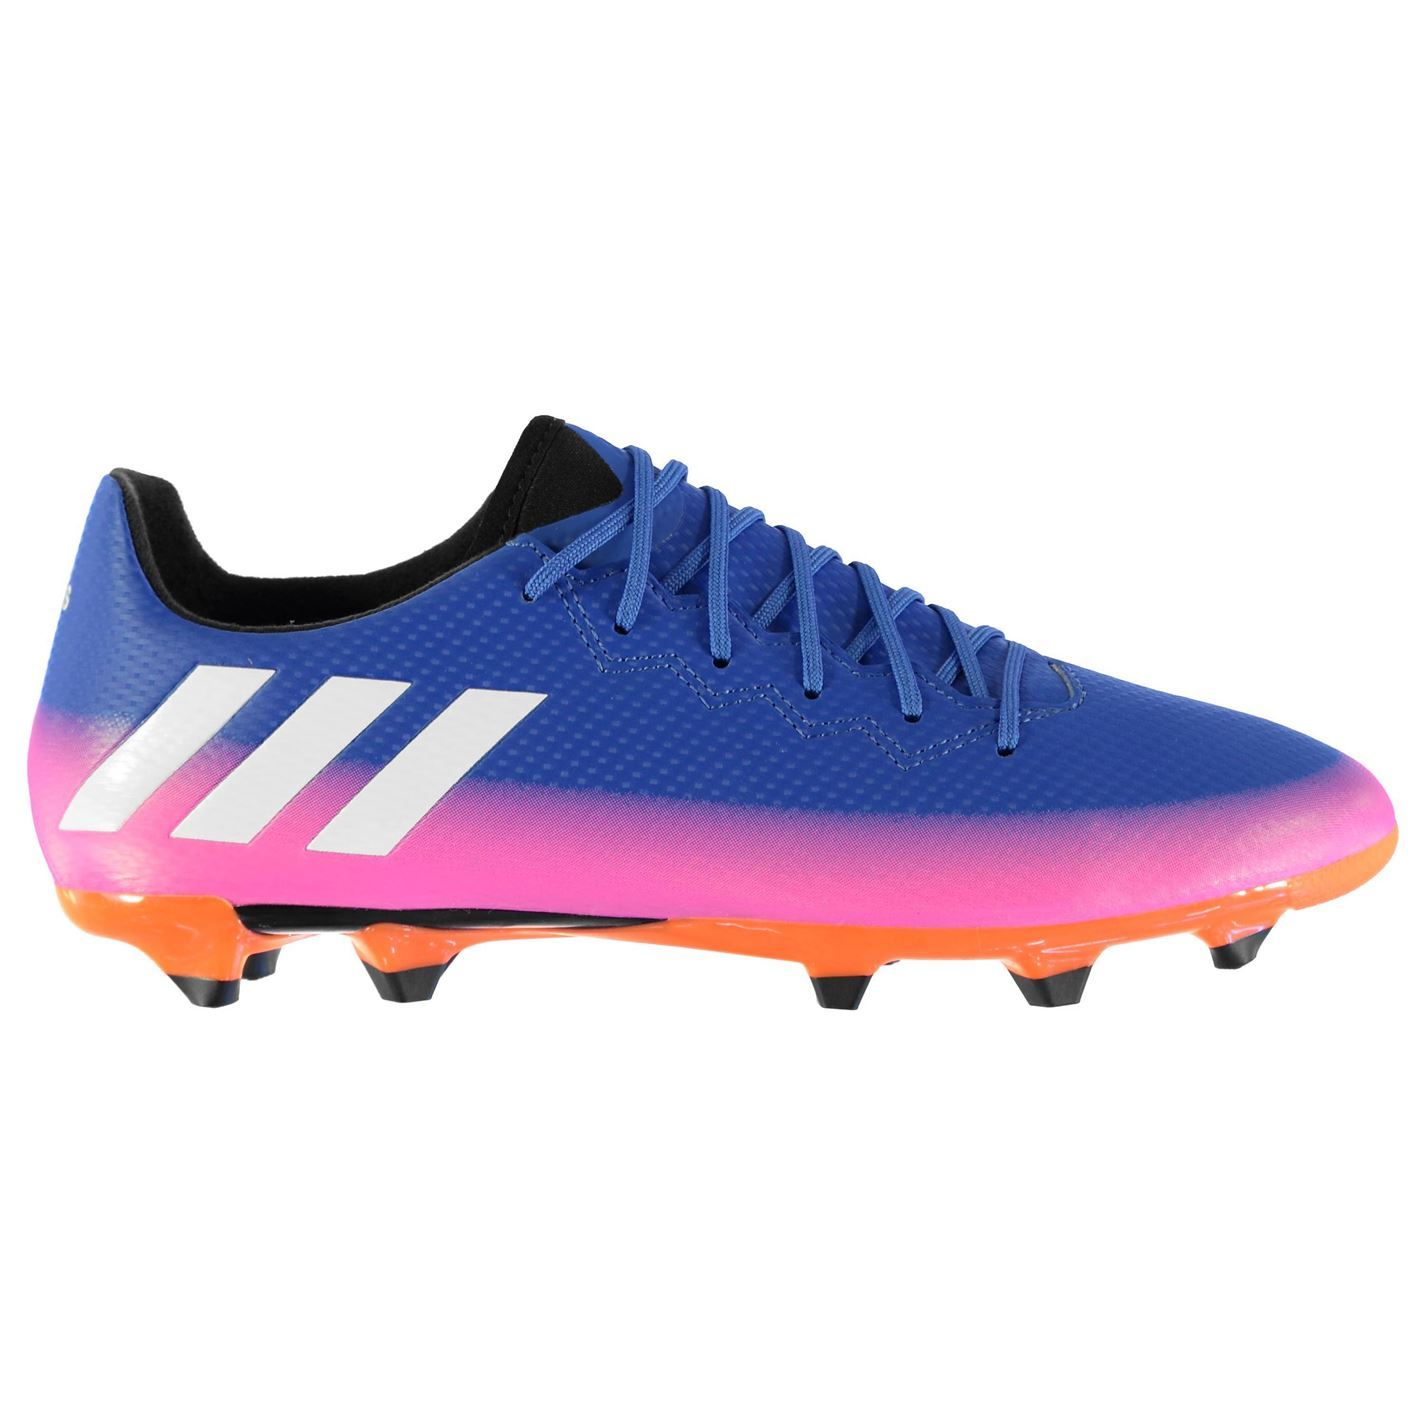 ... adidas Messi 16.3 FG Firm Ground Football Boots Mens Blu Wht Or Soccer  Shoes ... ab10c7c1d0e